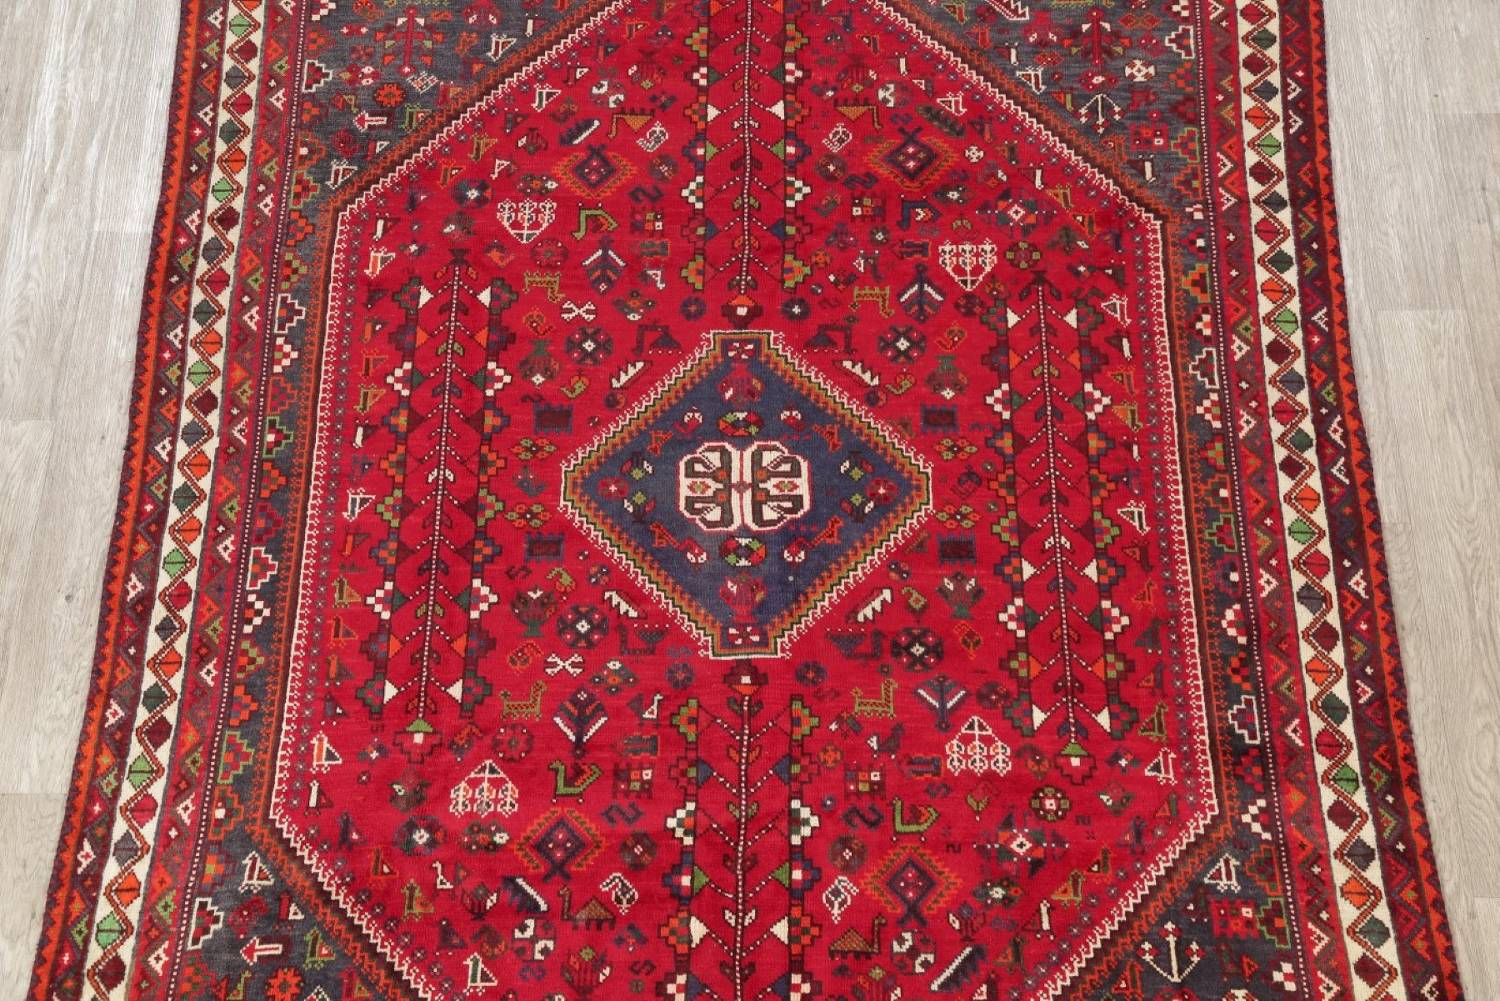 One-of-a-Kind Antique Tribal Shiraz Persian Hand-Knotted 7x10 Wool Area Rug image 23